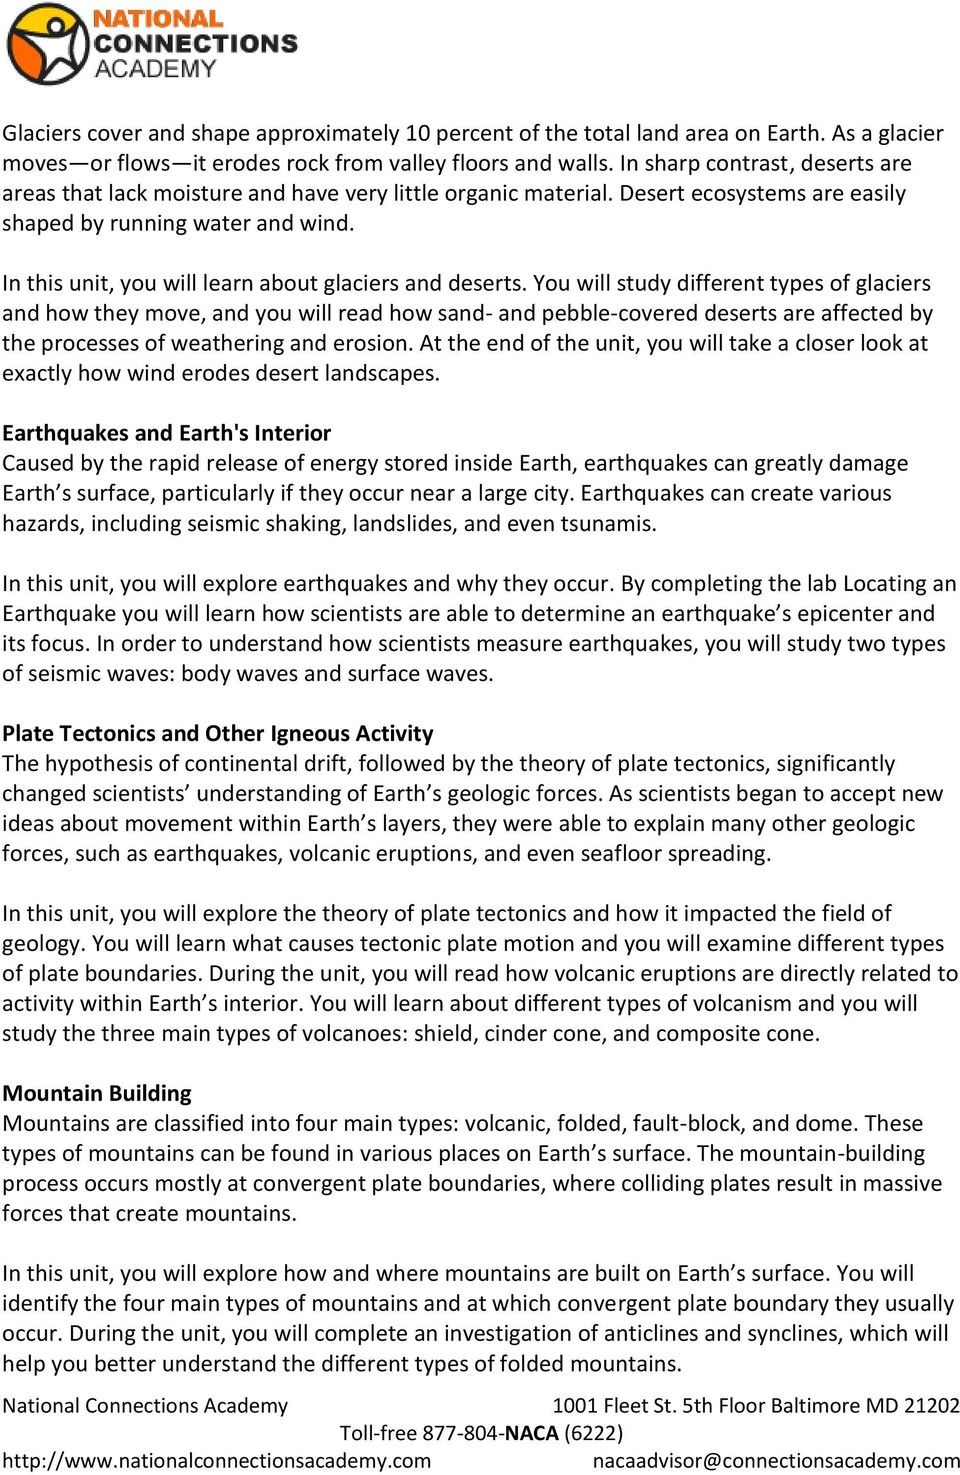 describe the different geological forces that shape the earth